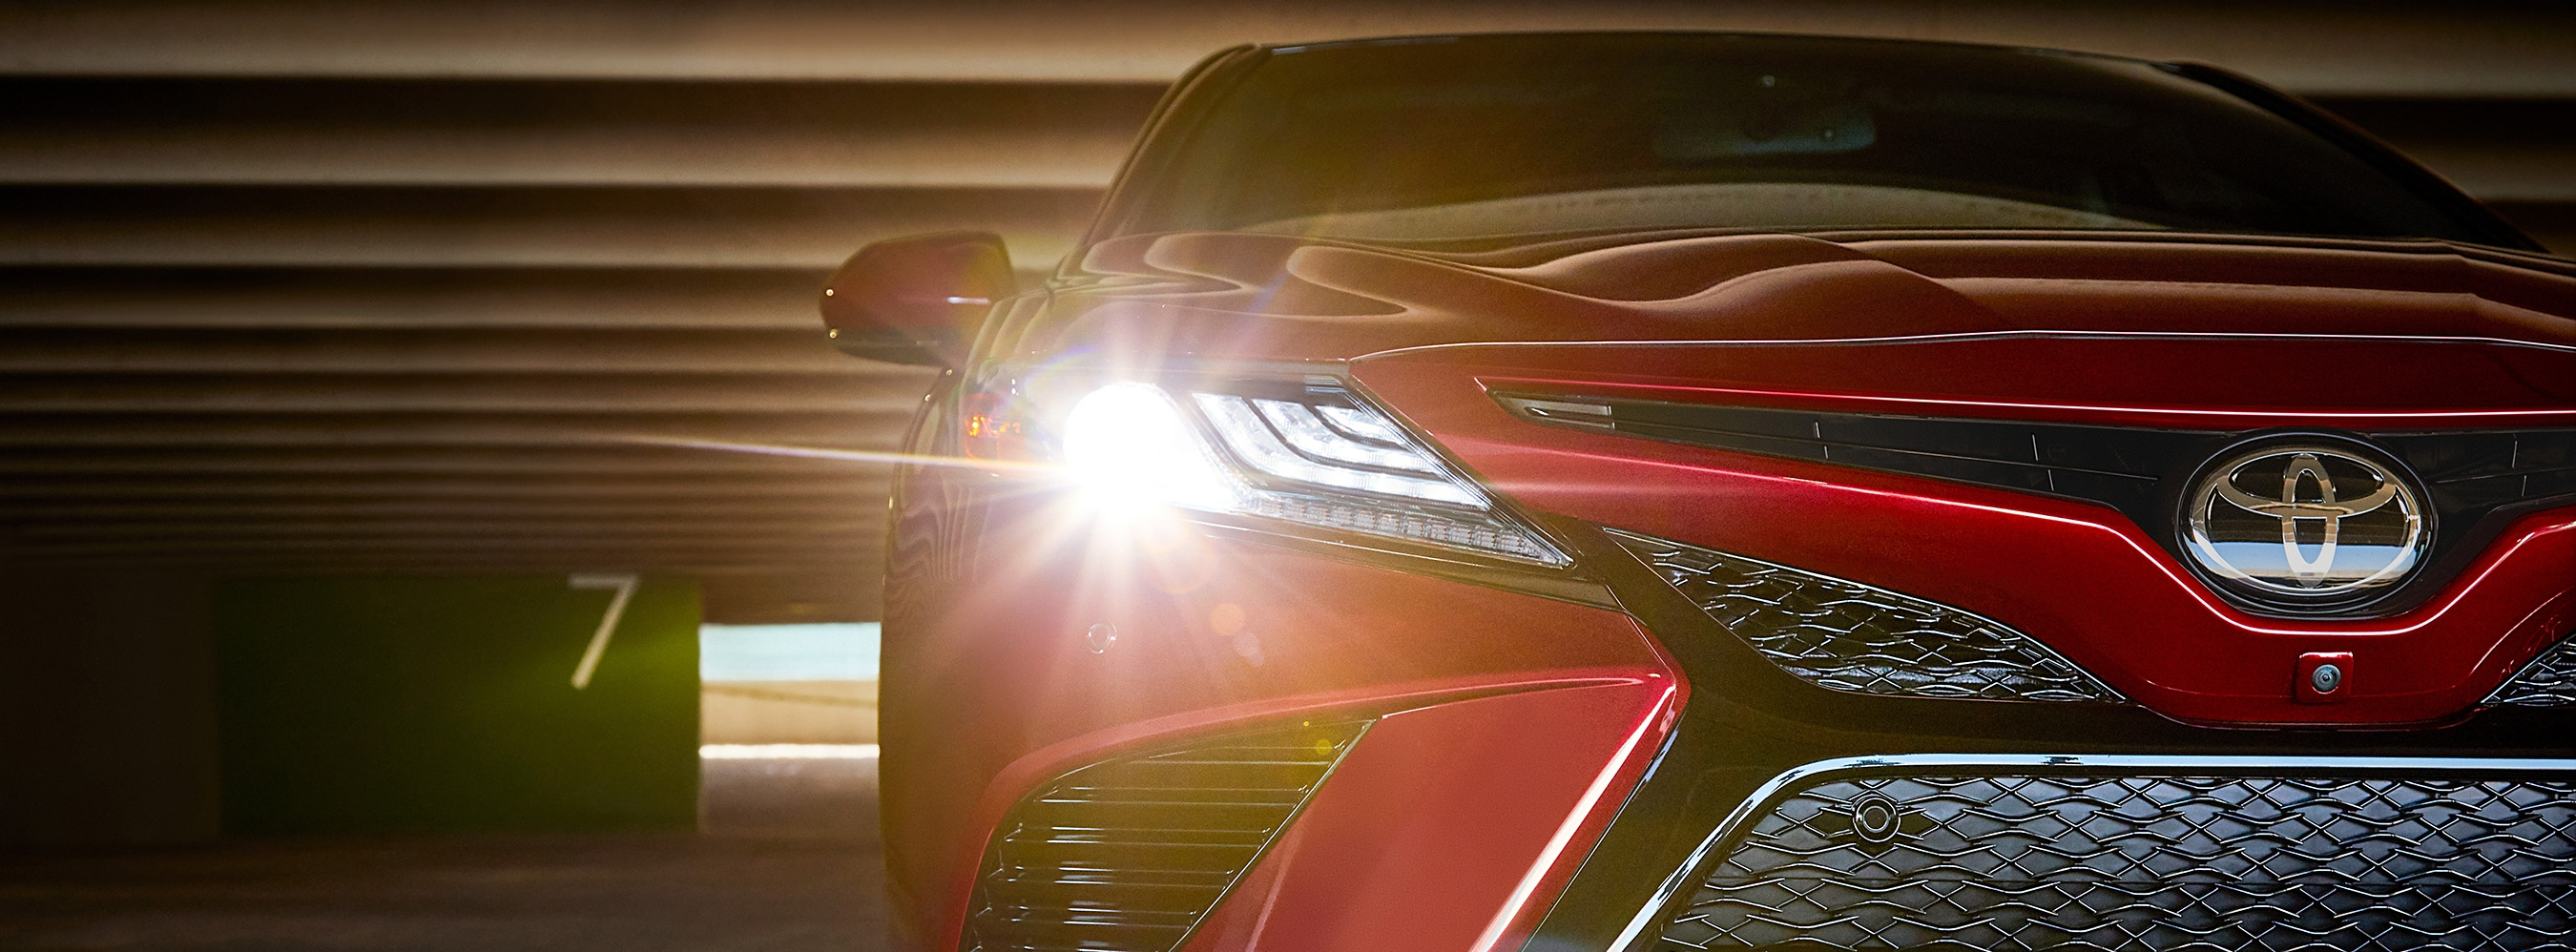 Up close shot of front grille and headlights of the 2018 Toyota Camry